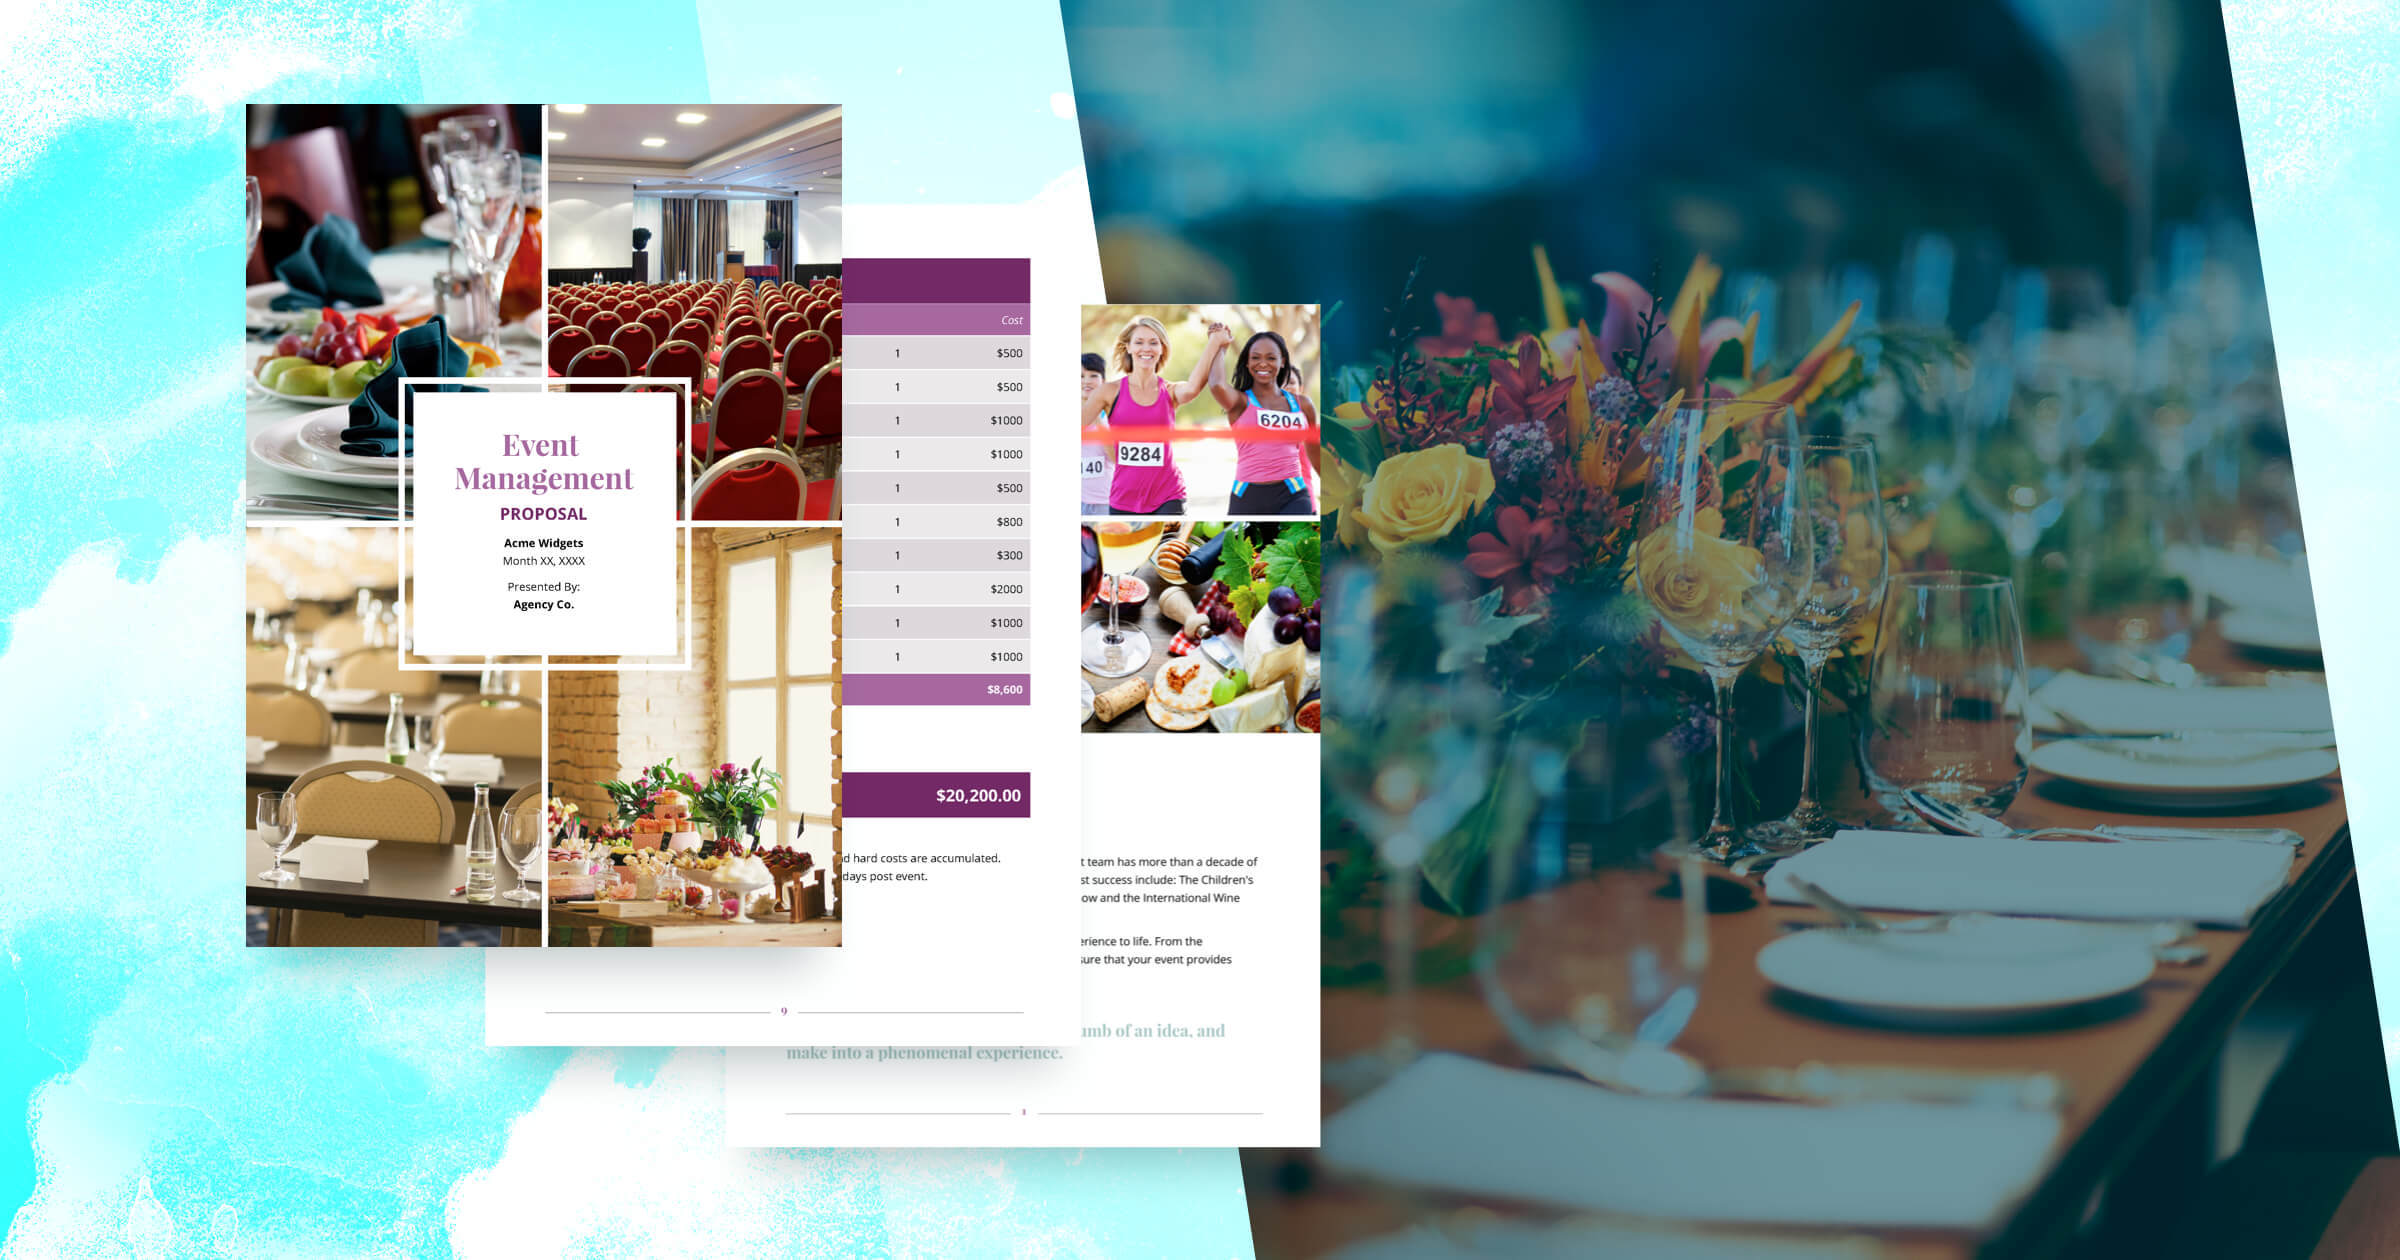 Event Management Proposal Template Free Sample - Makeup artist invoice template free online vapor store